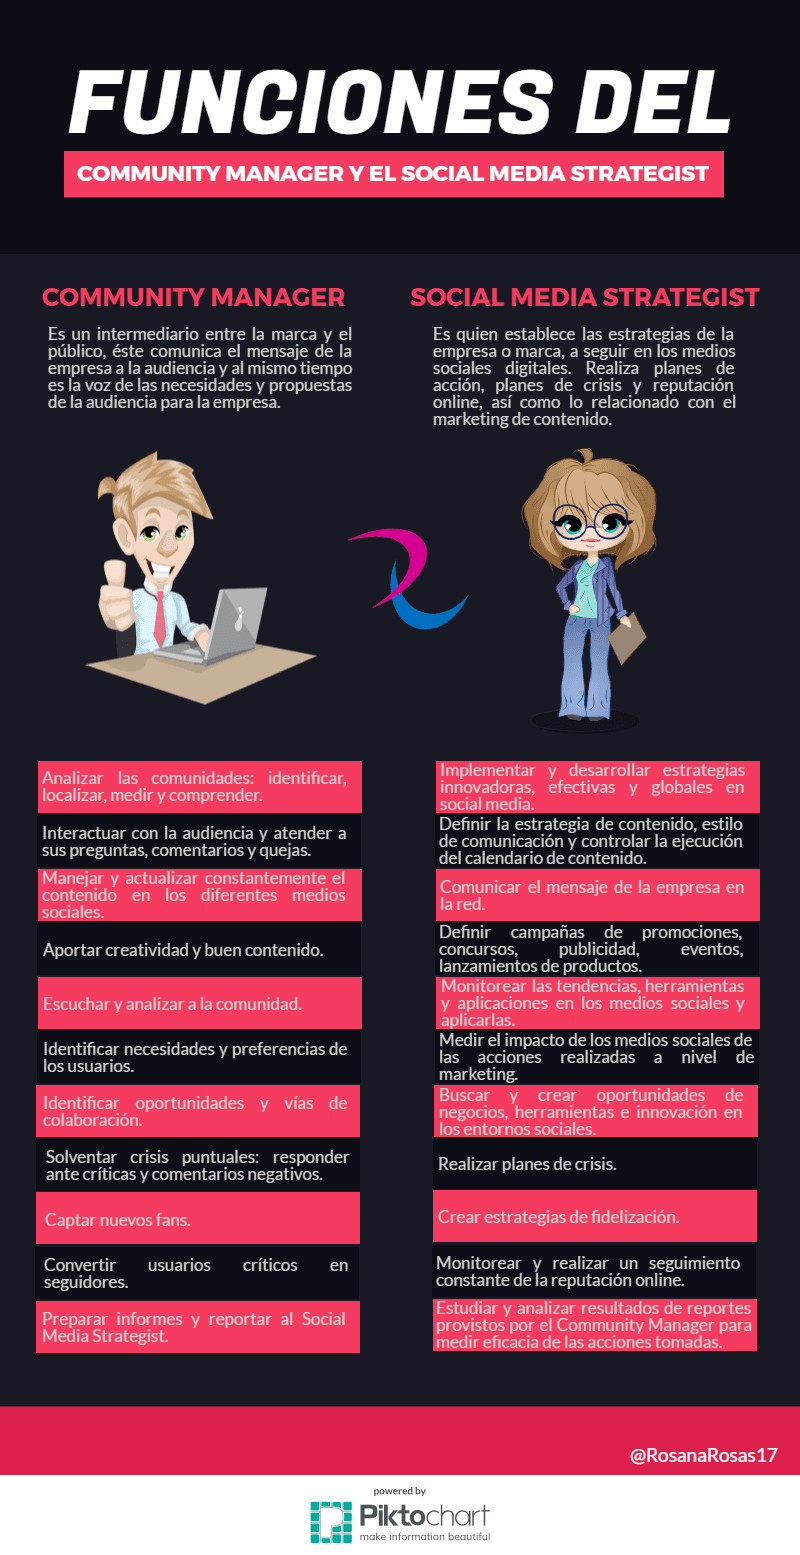 Community Manager vs Social Media Strategist